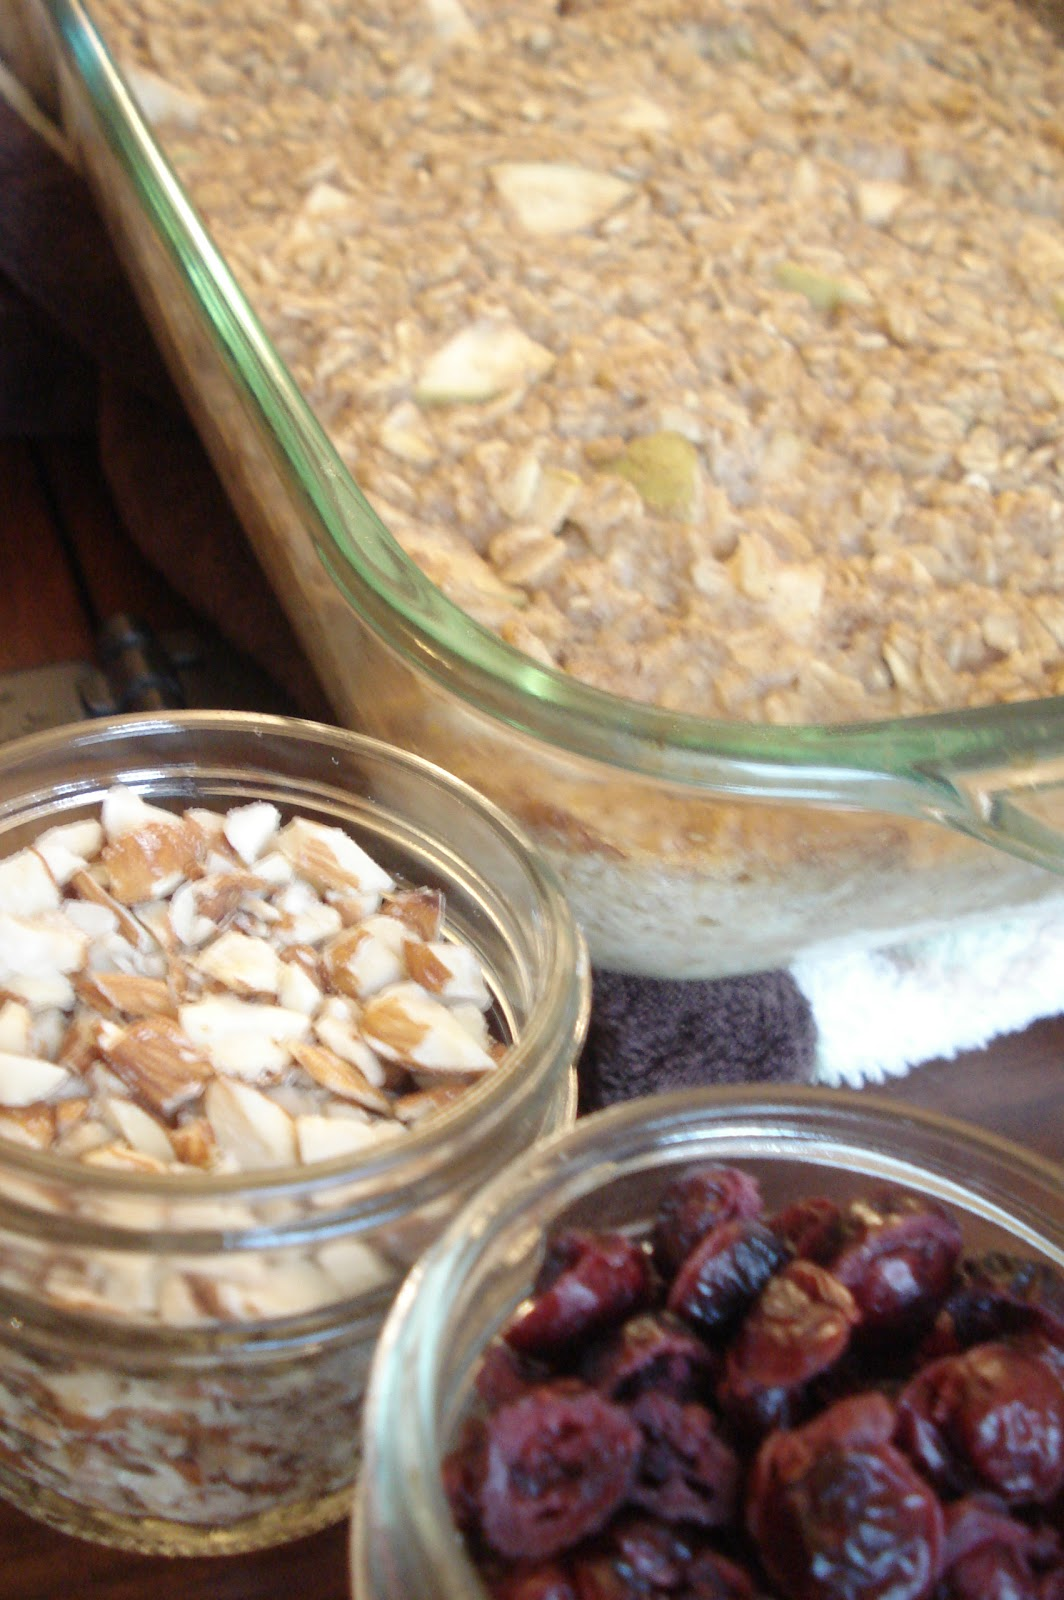 Thrifty Living: Baked Apple Cinnamon Oatmeal